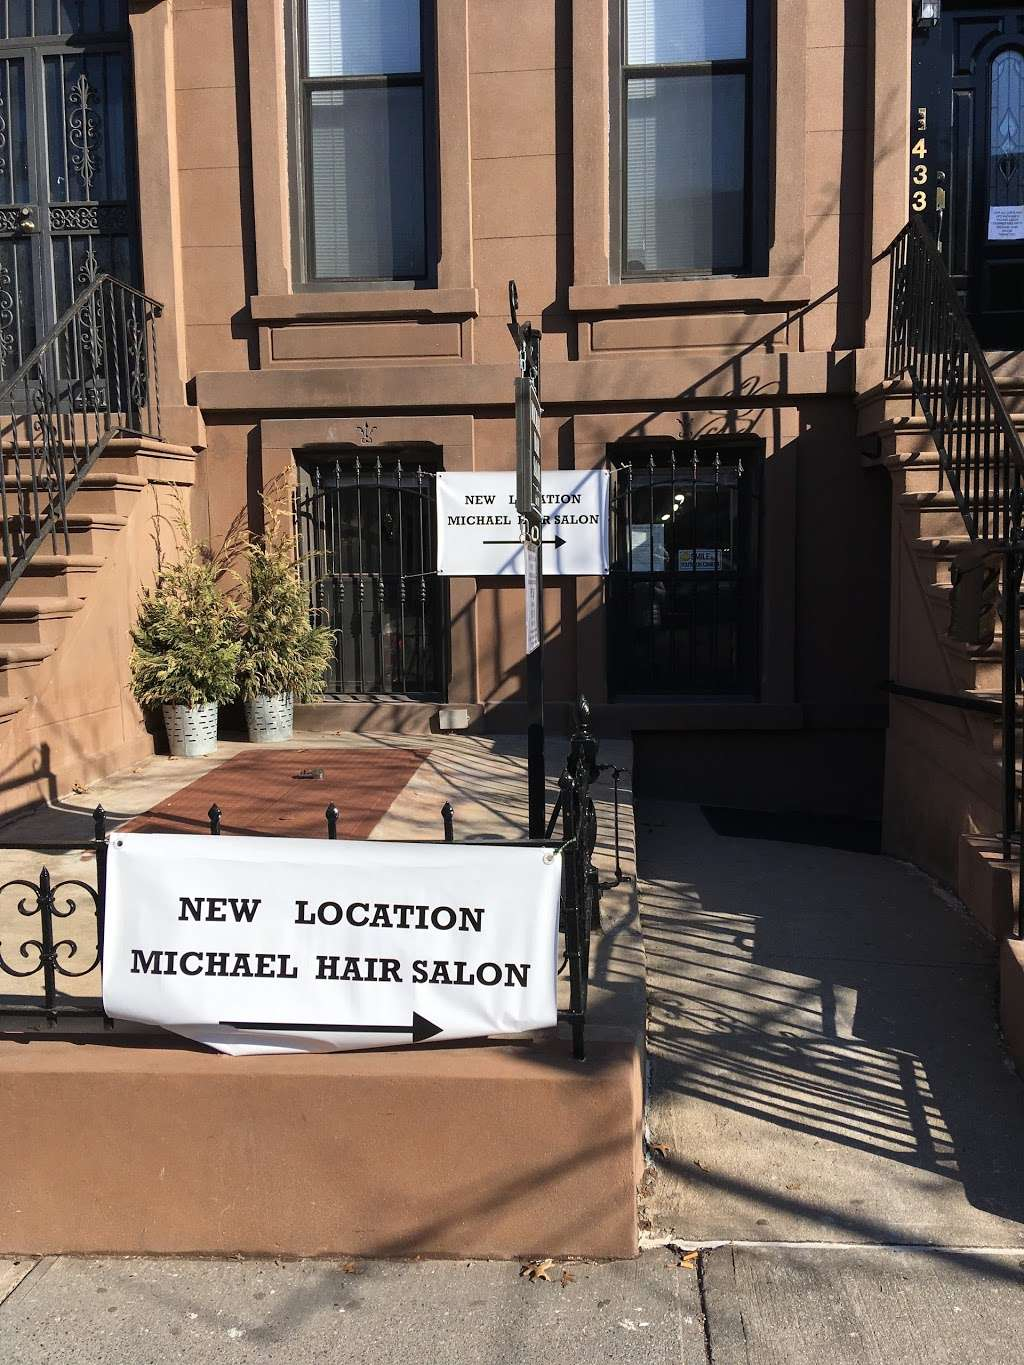 Michael Hair Salon - hair care  | Photo 1 of 10 | Address: 433 9th St, Brooklyn, NY 11215, USA | Phone: (718) 965-3774